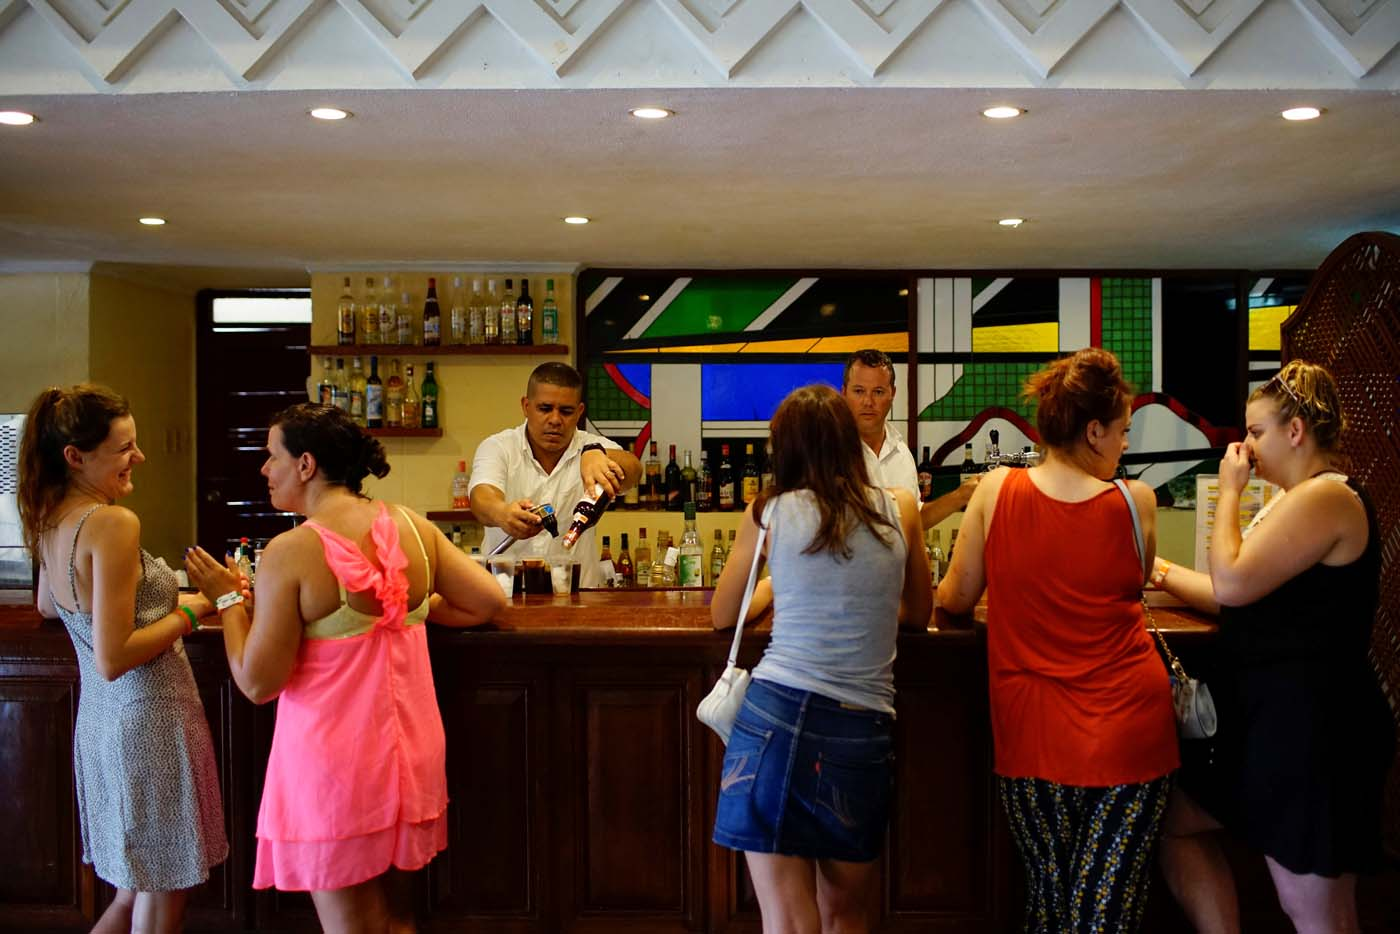 Tourists gather in a hotel bar a day after the passage of Hurricane Irma in Varadero, Cuba, September 10, 2017. REUTERS/Alexandre Meneghini